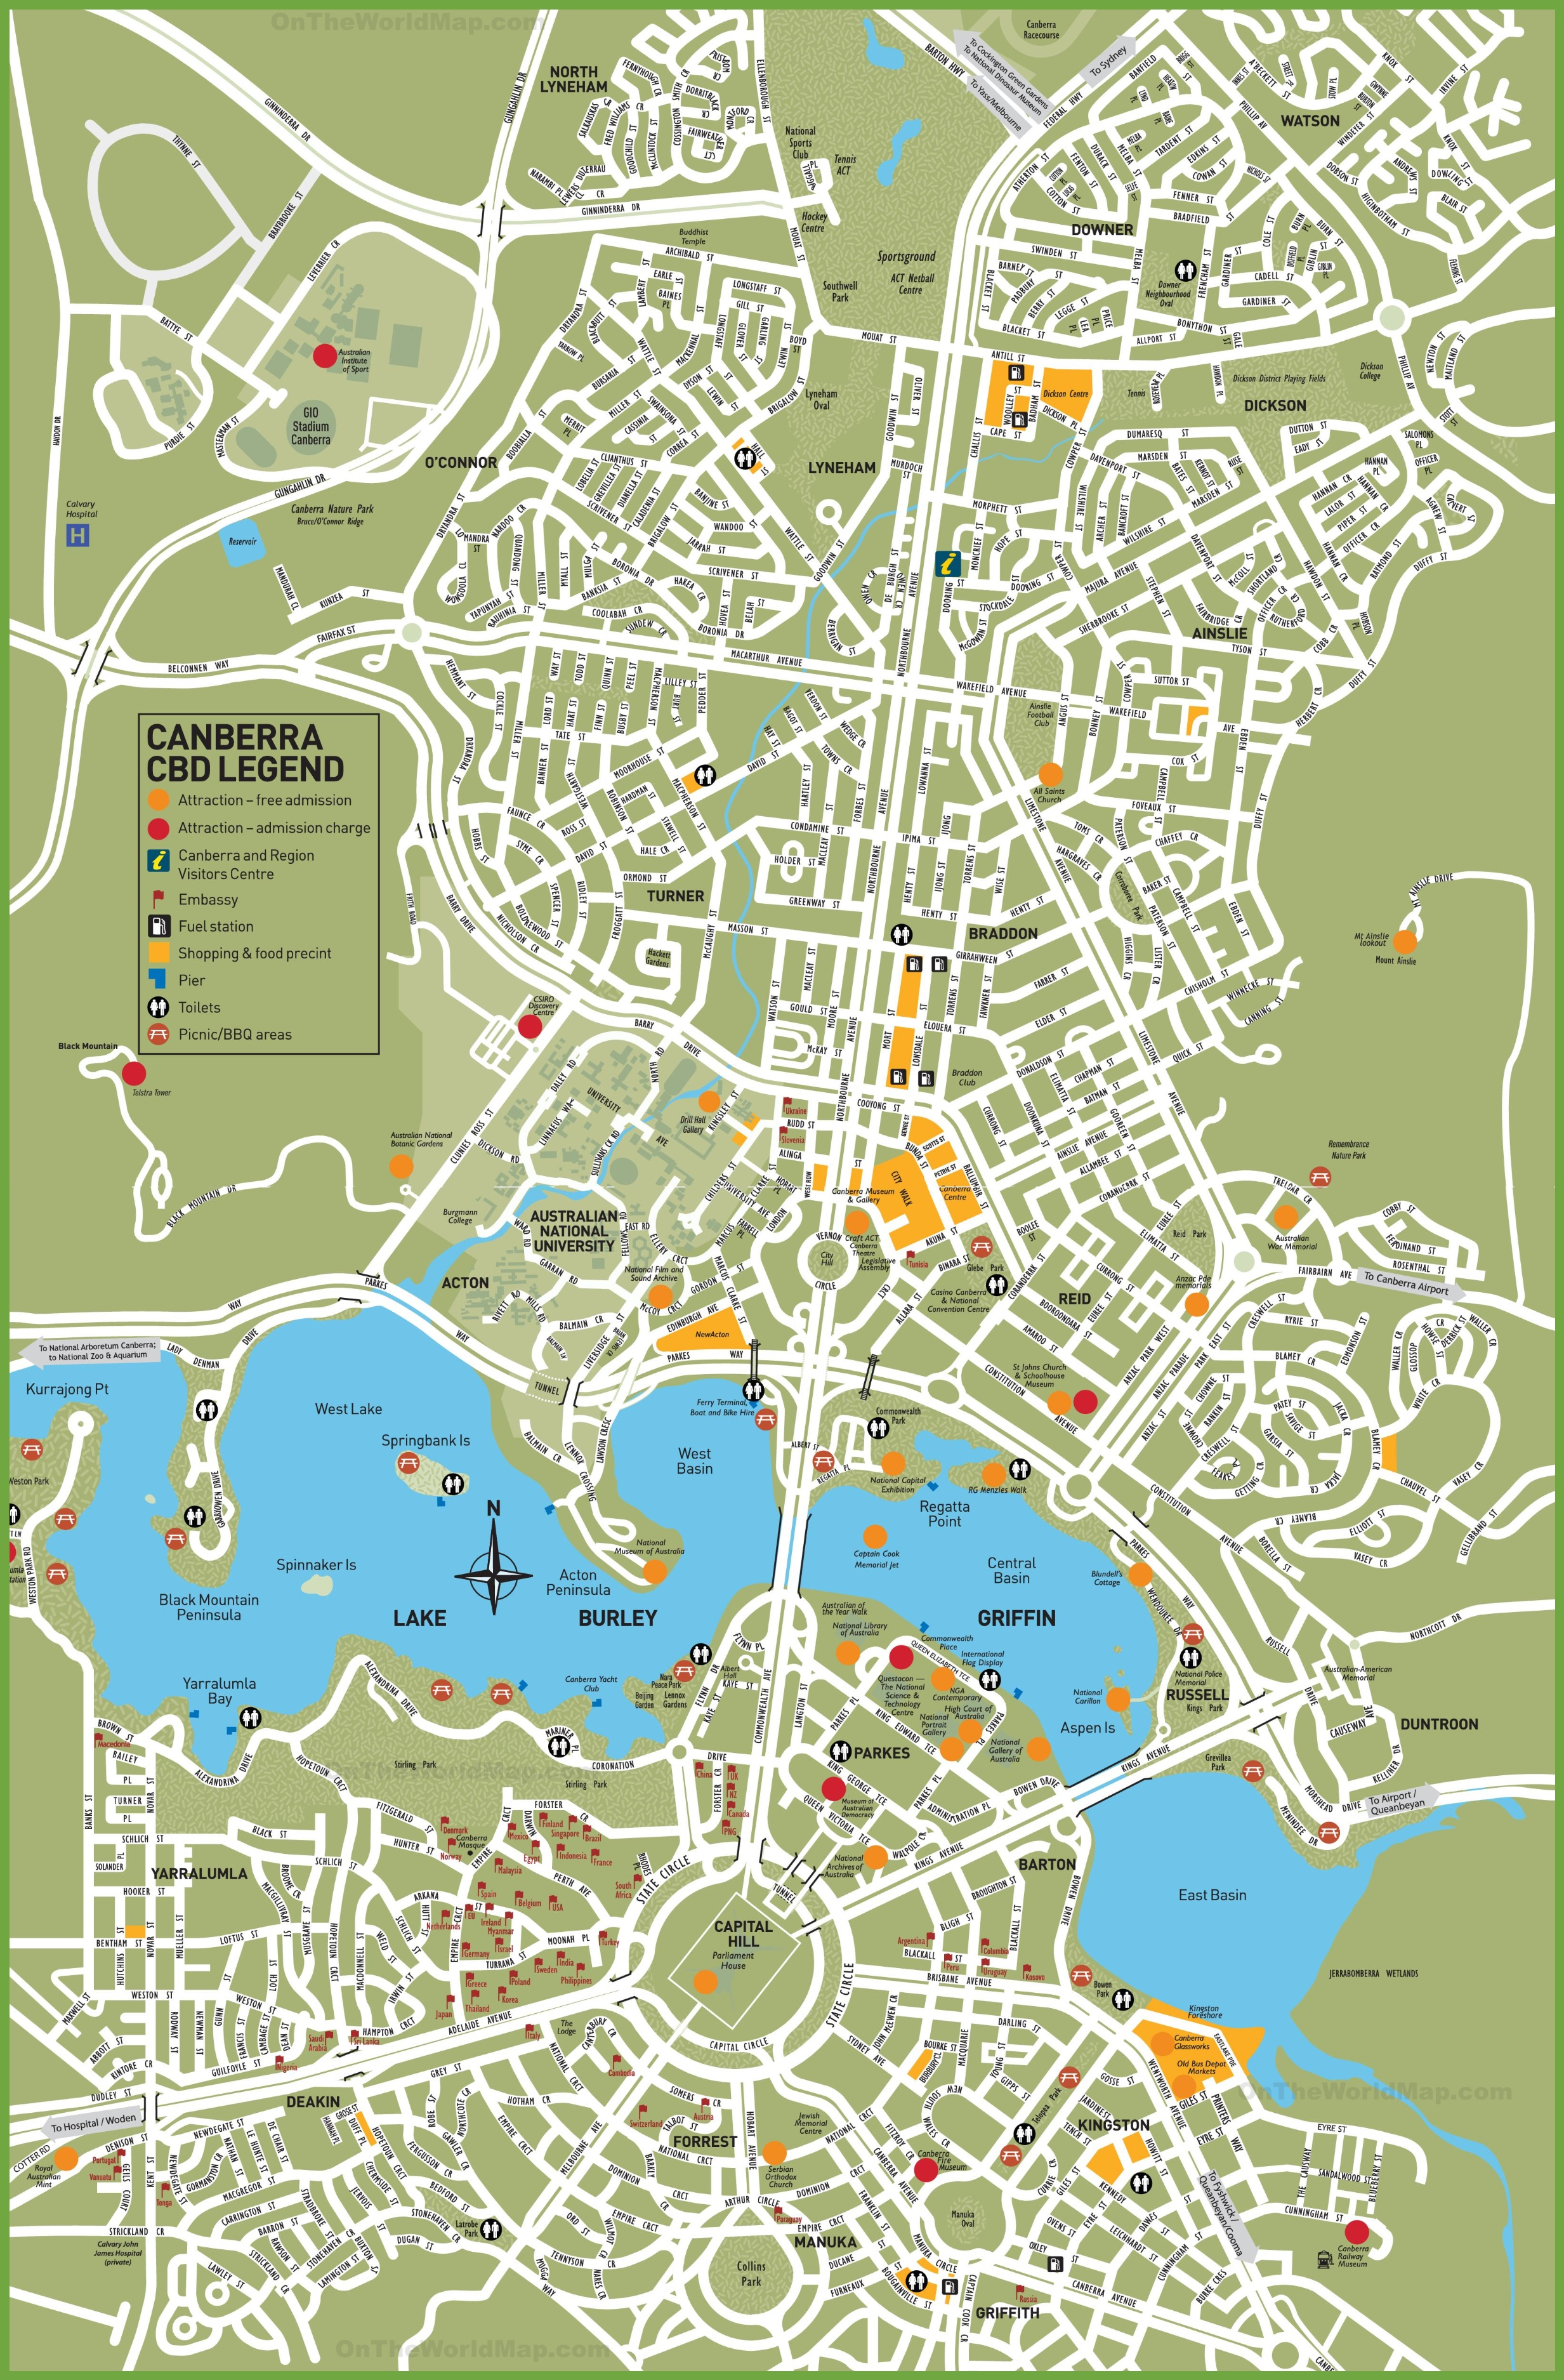 Map Of Canberra Canberra tourist map Map Of Canberra